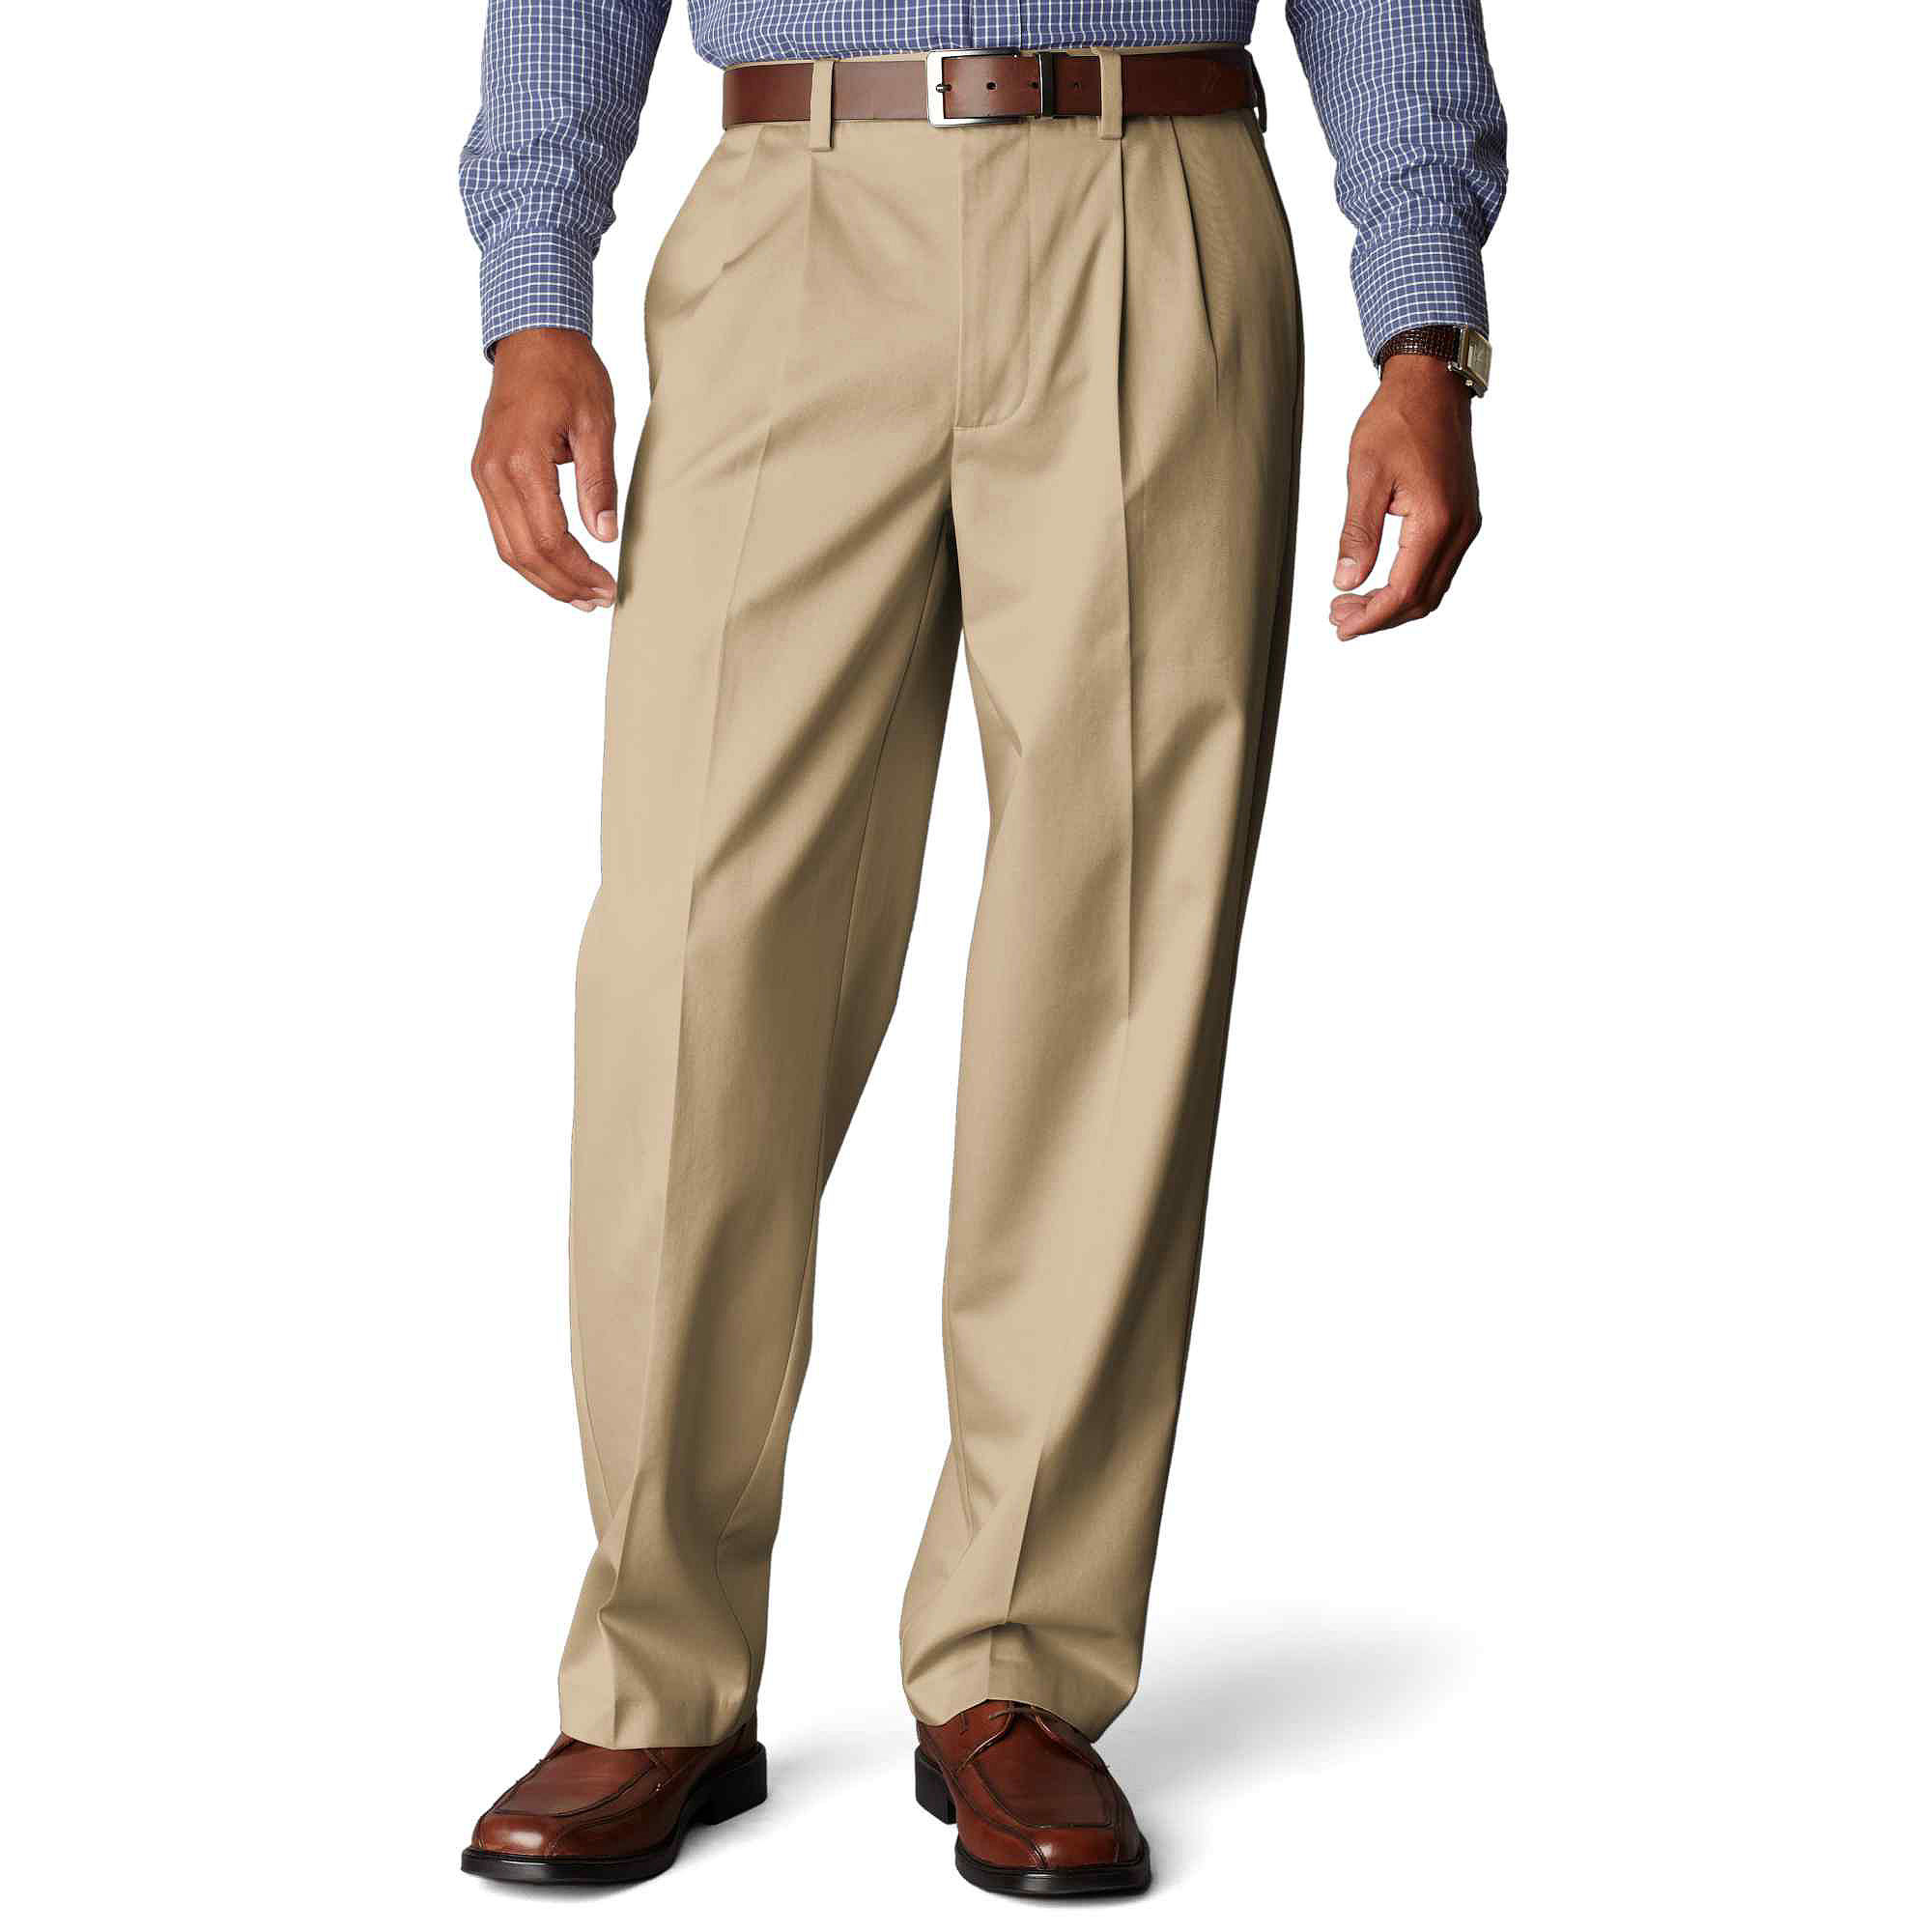 Dockers D4 Signature Relaxed-Fit Pleated Khakis